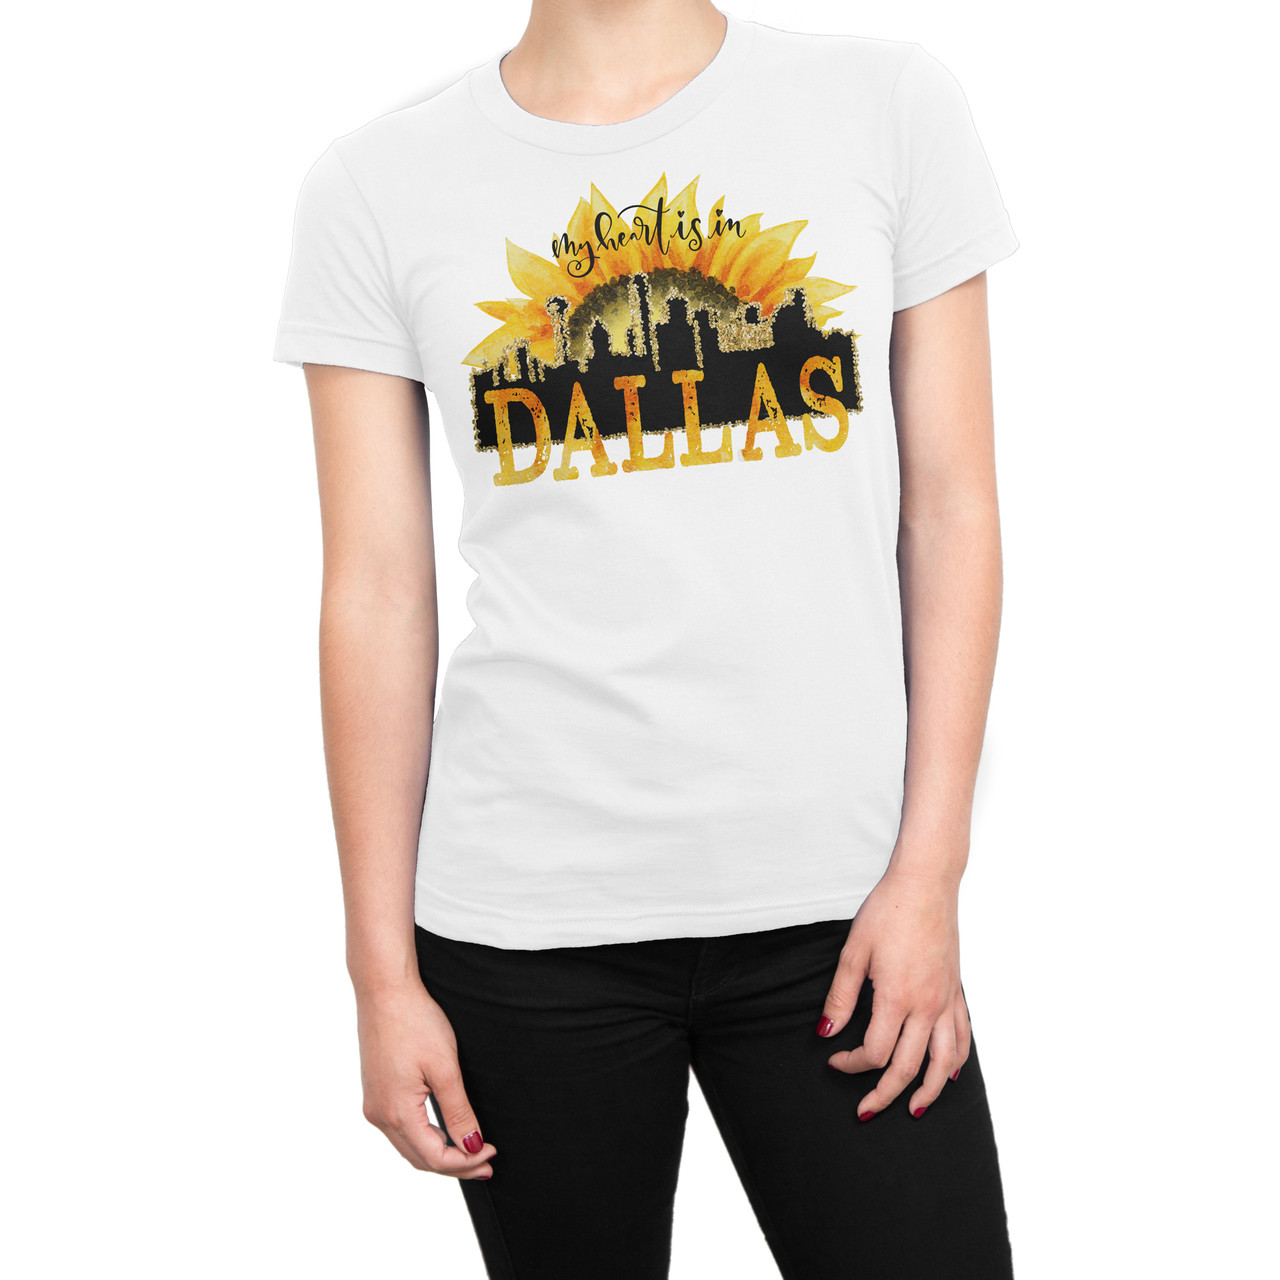 My heart belongs to Dallas Sublimation printed t-shirt. Printed on White Gildan 100% polyester soft shirt